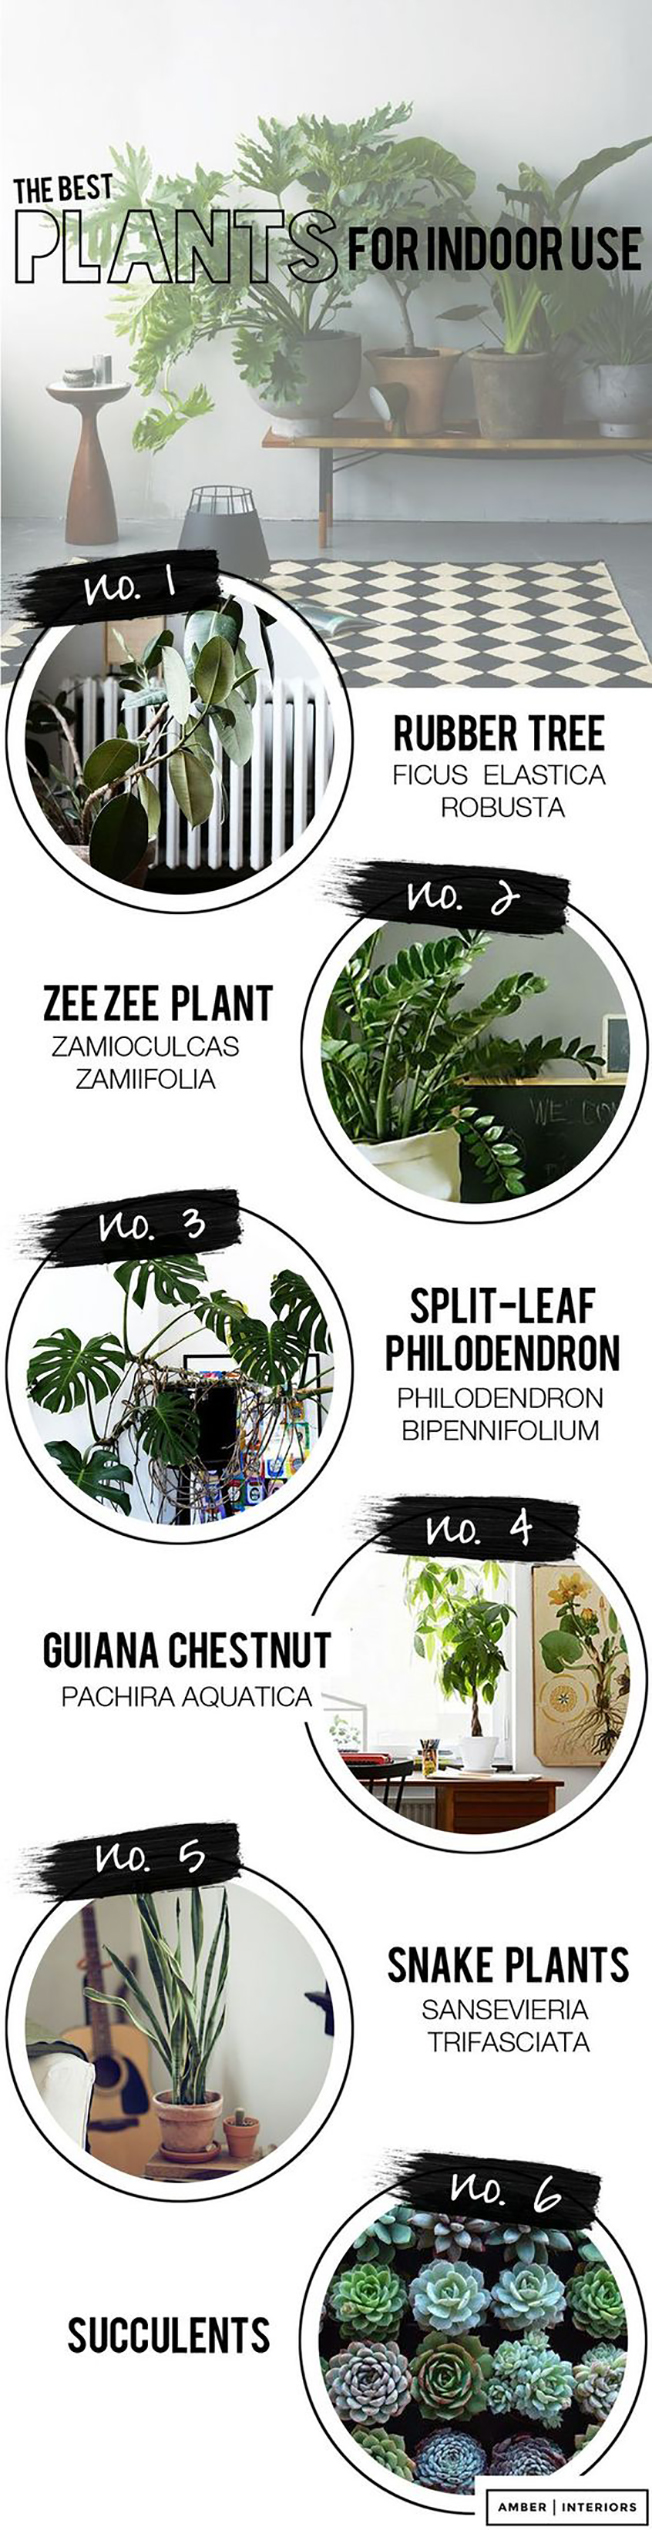 ilovegreeninspiration-fashion.agazine-marinellarauso-decoraninteriorwithplants-11